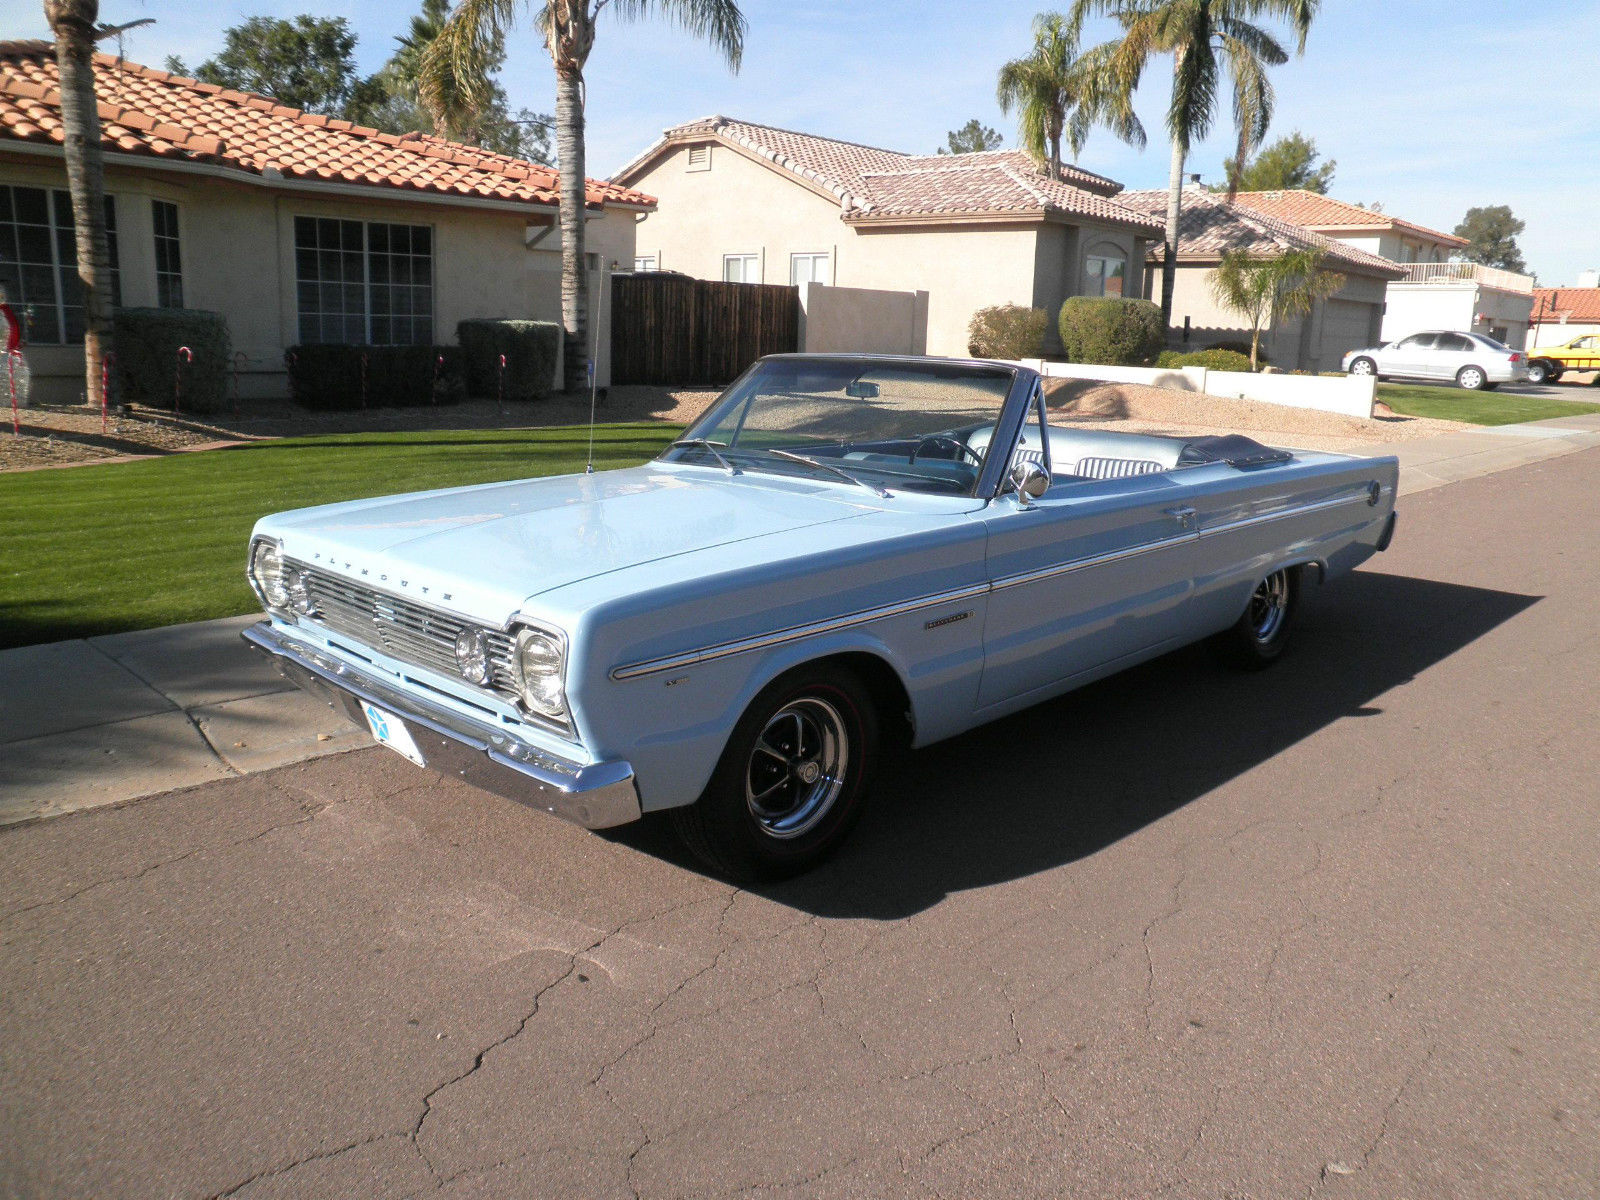 1966 Plymouth Belvedere Ii Convertible For Sale In Phoenix